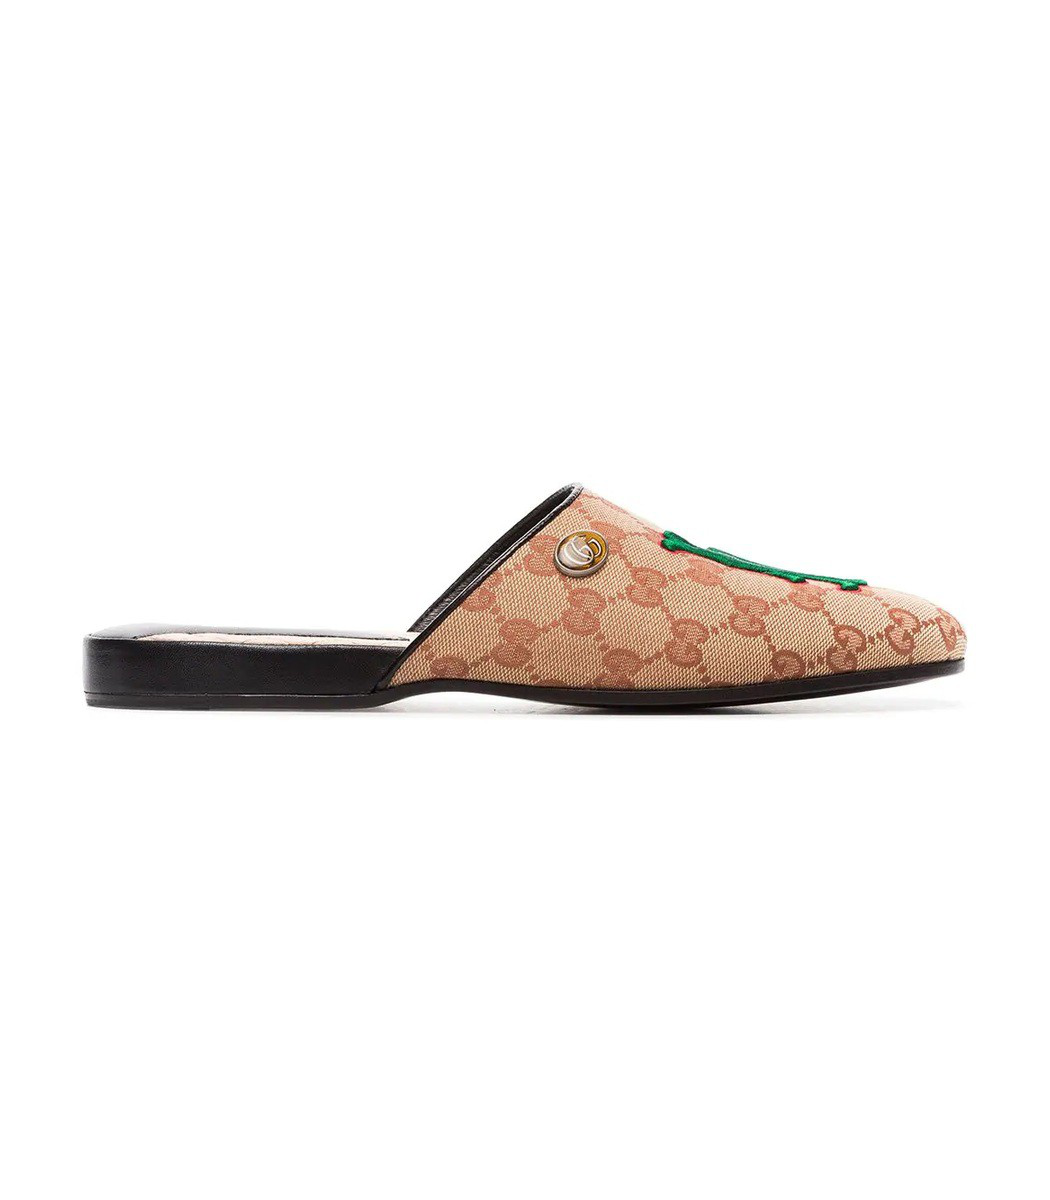 5342d625b1452 Gucci Flamel Embroidered Canvas Slippers In Neutrals